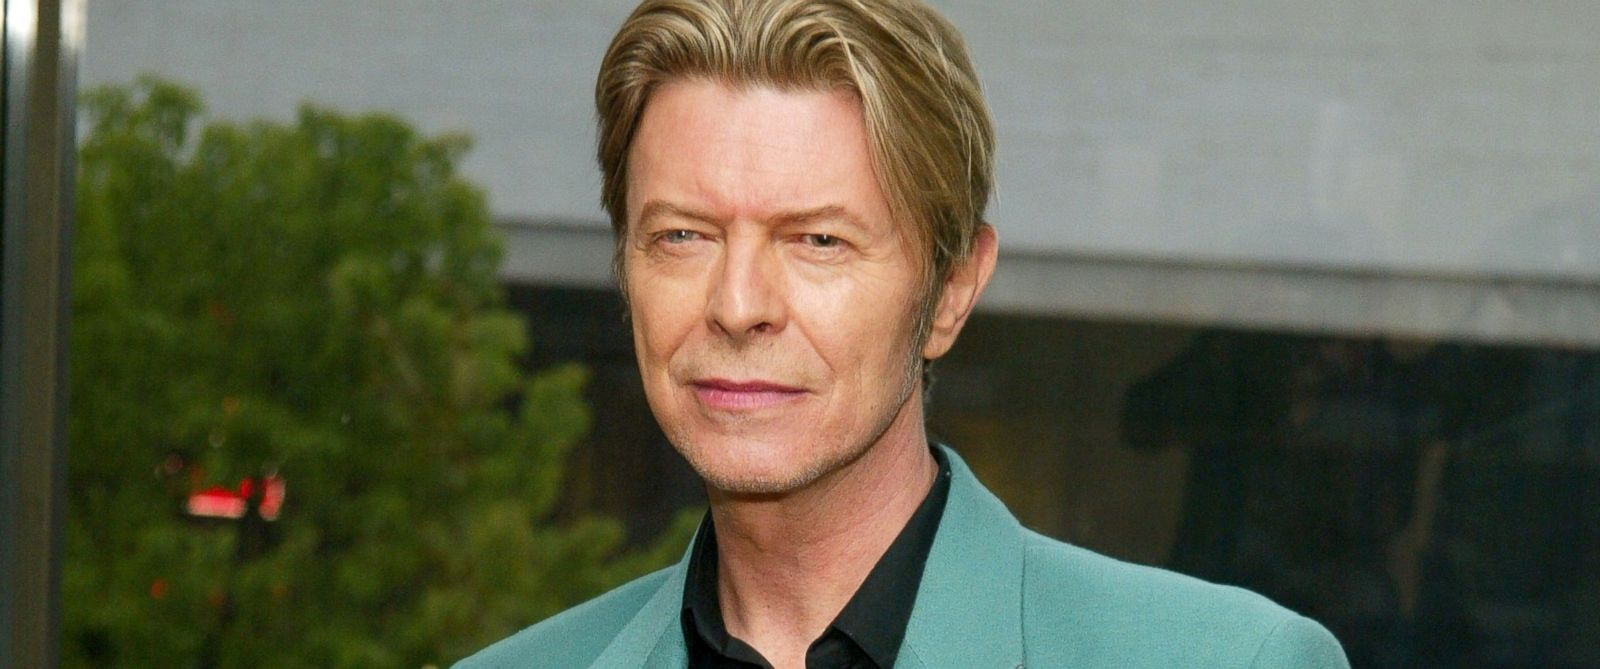 PHOTO: David Bowie stands backstage at the Film Society of Lincoln Centers Tribute to Susan Sarandon at Avery Fisher Hall, May 5, 2003, in New York City.